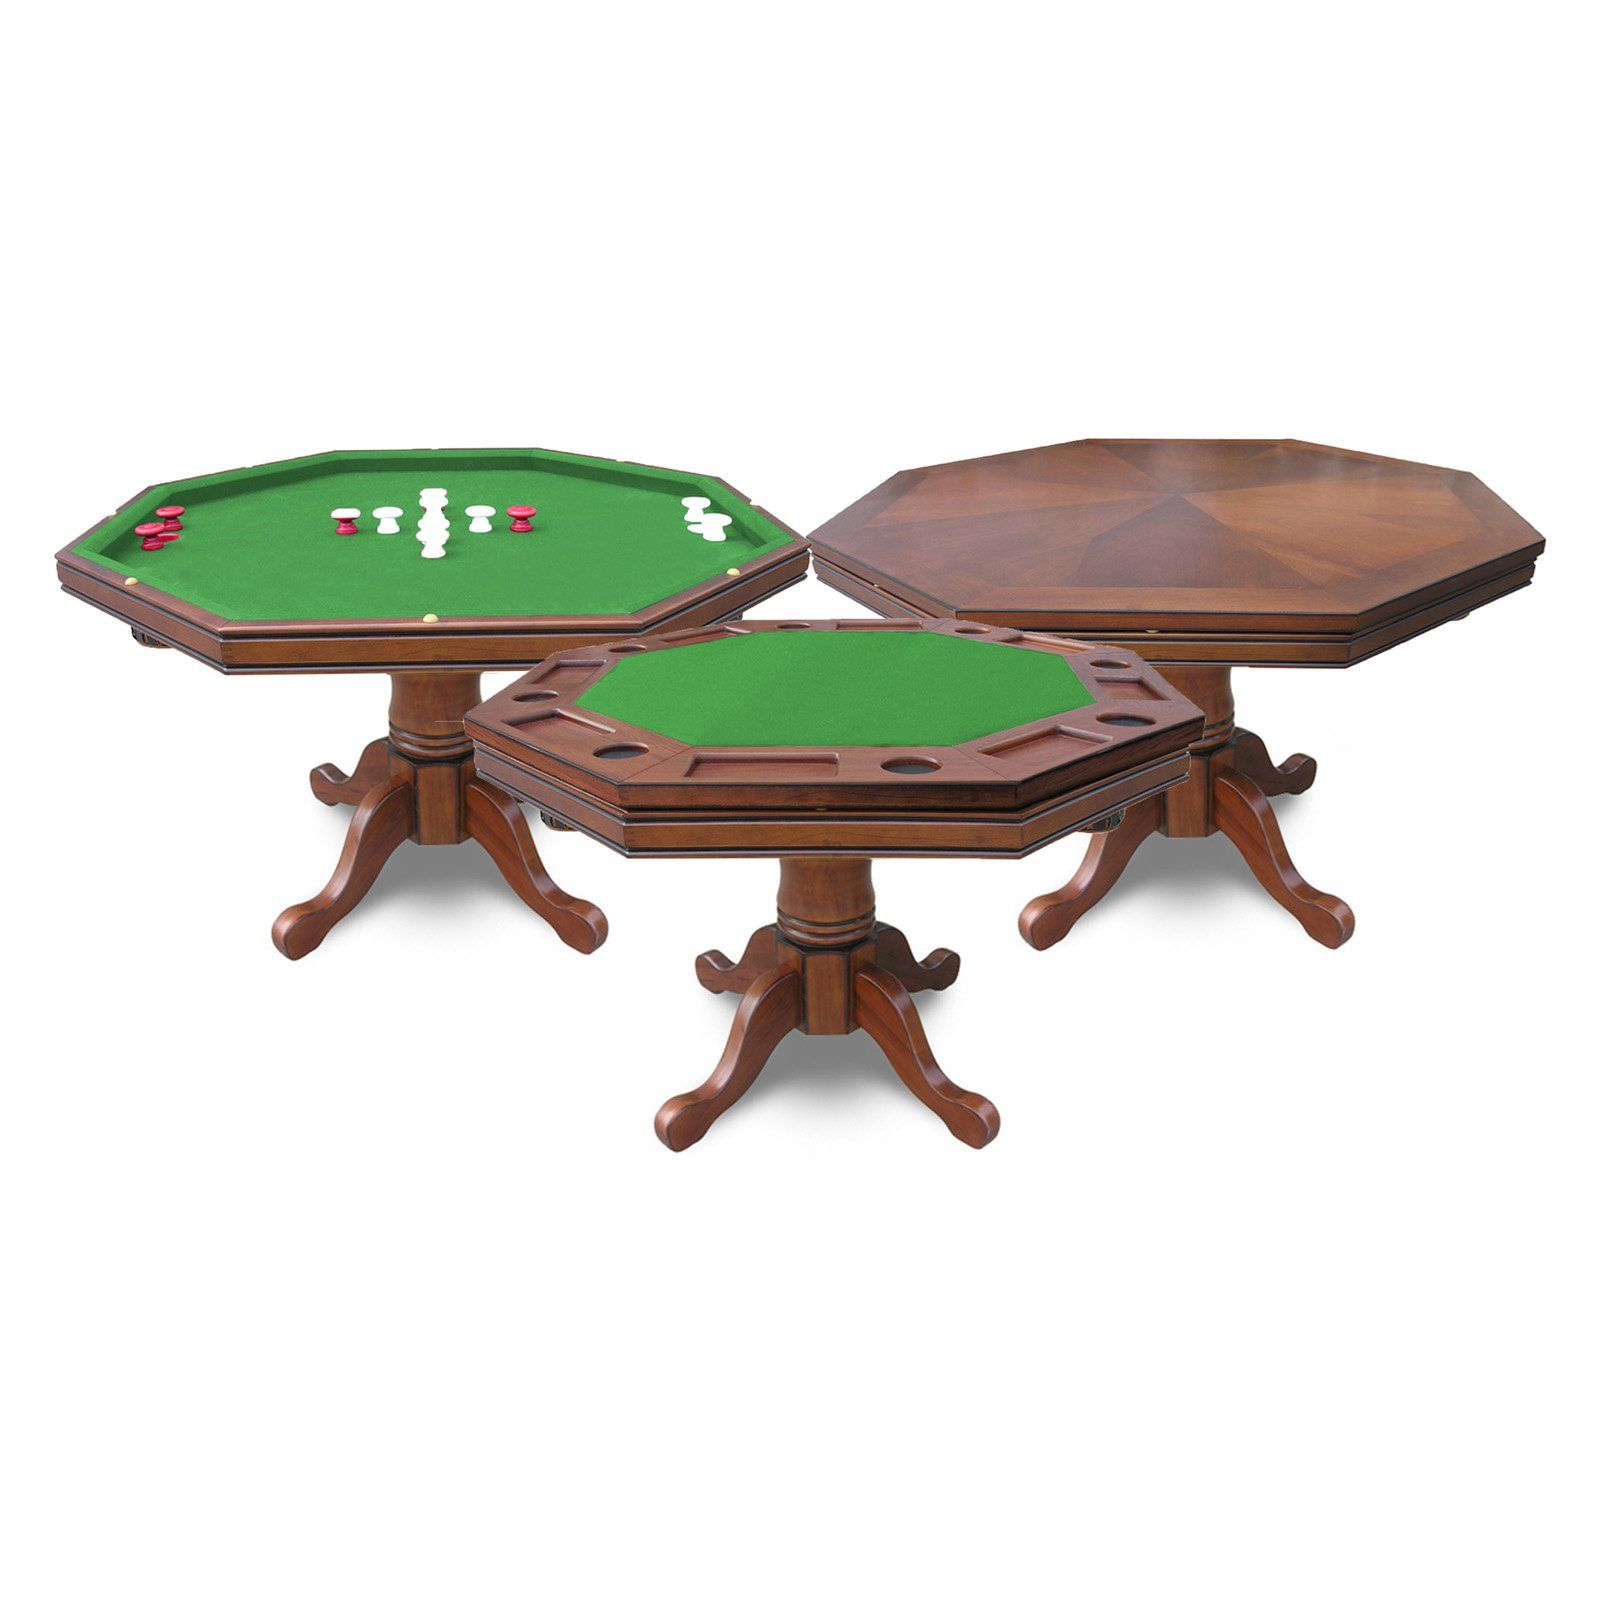 Hathaway Kingston 3in1 Poker / Bumper Pool Table with